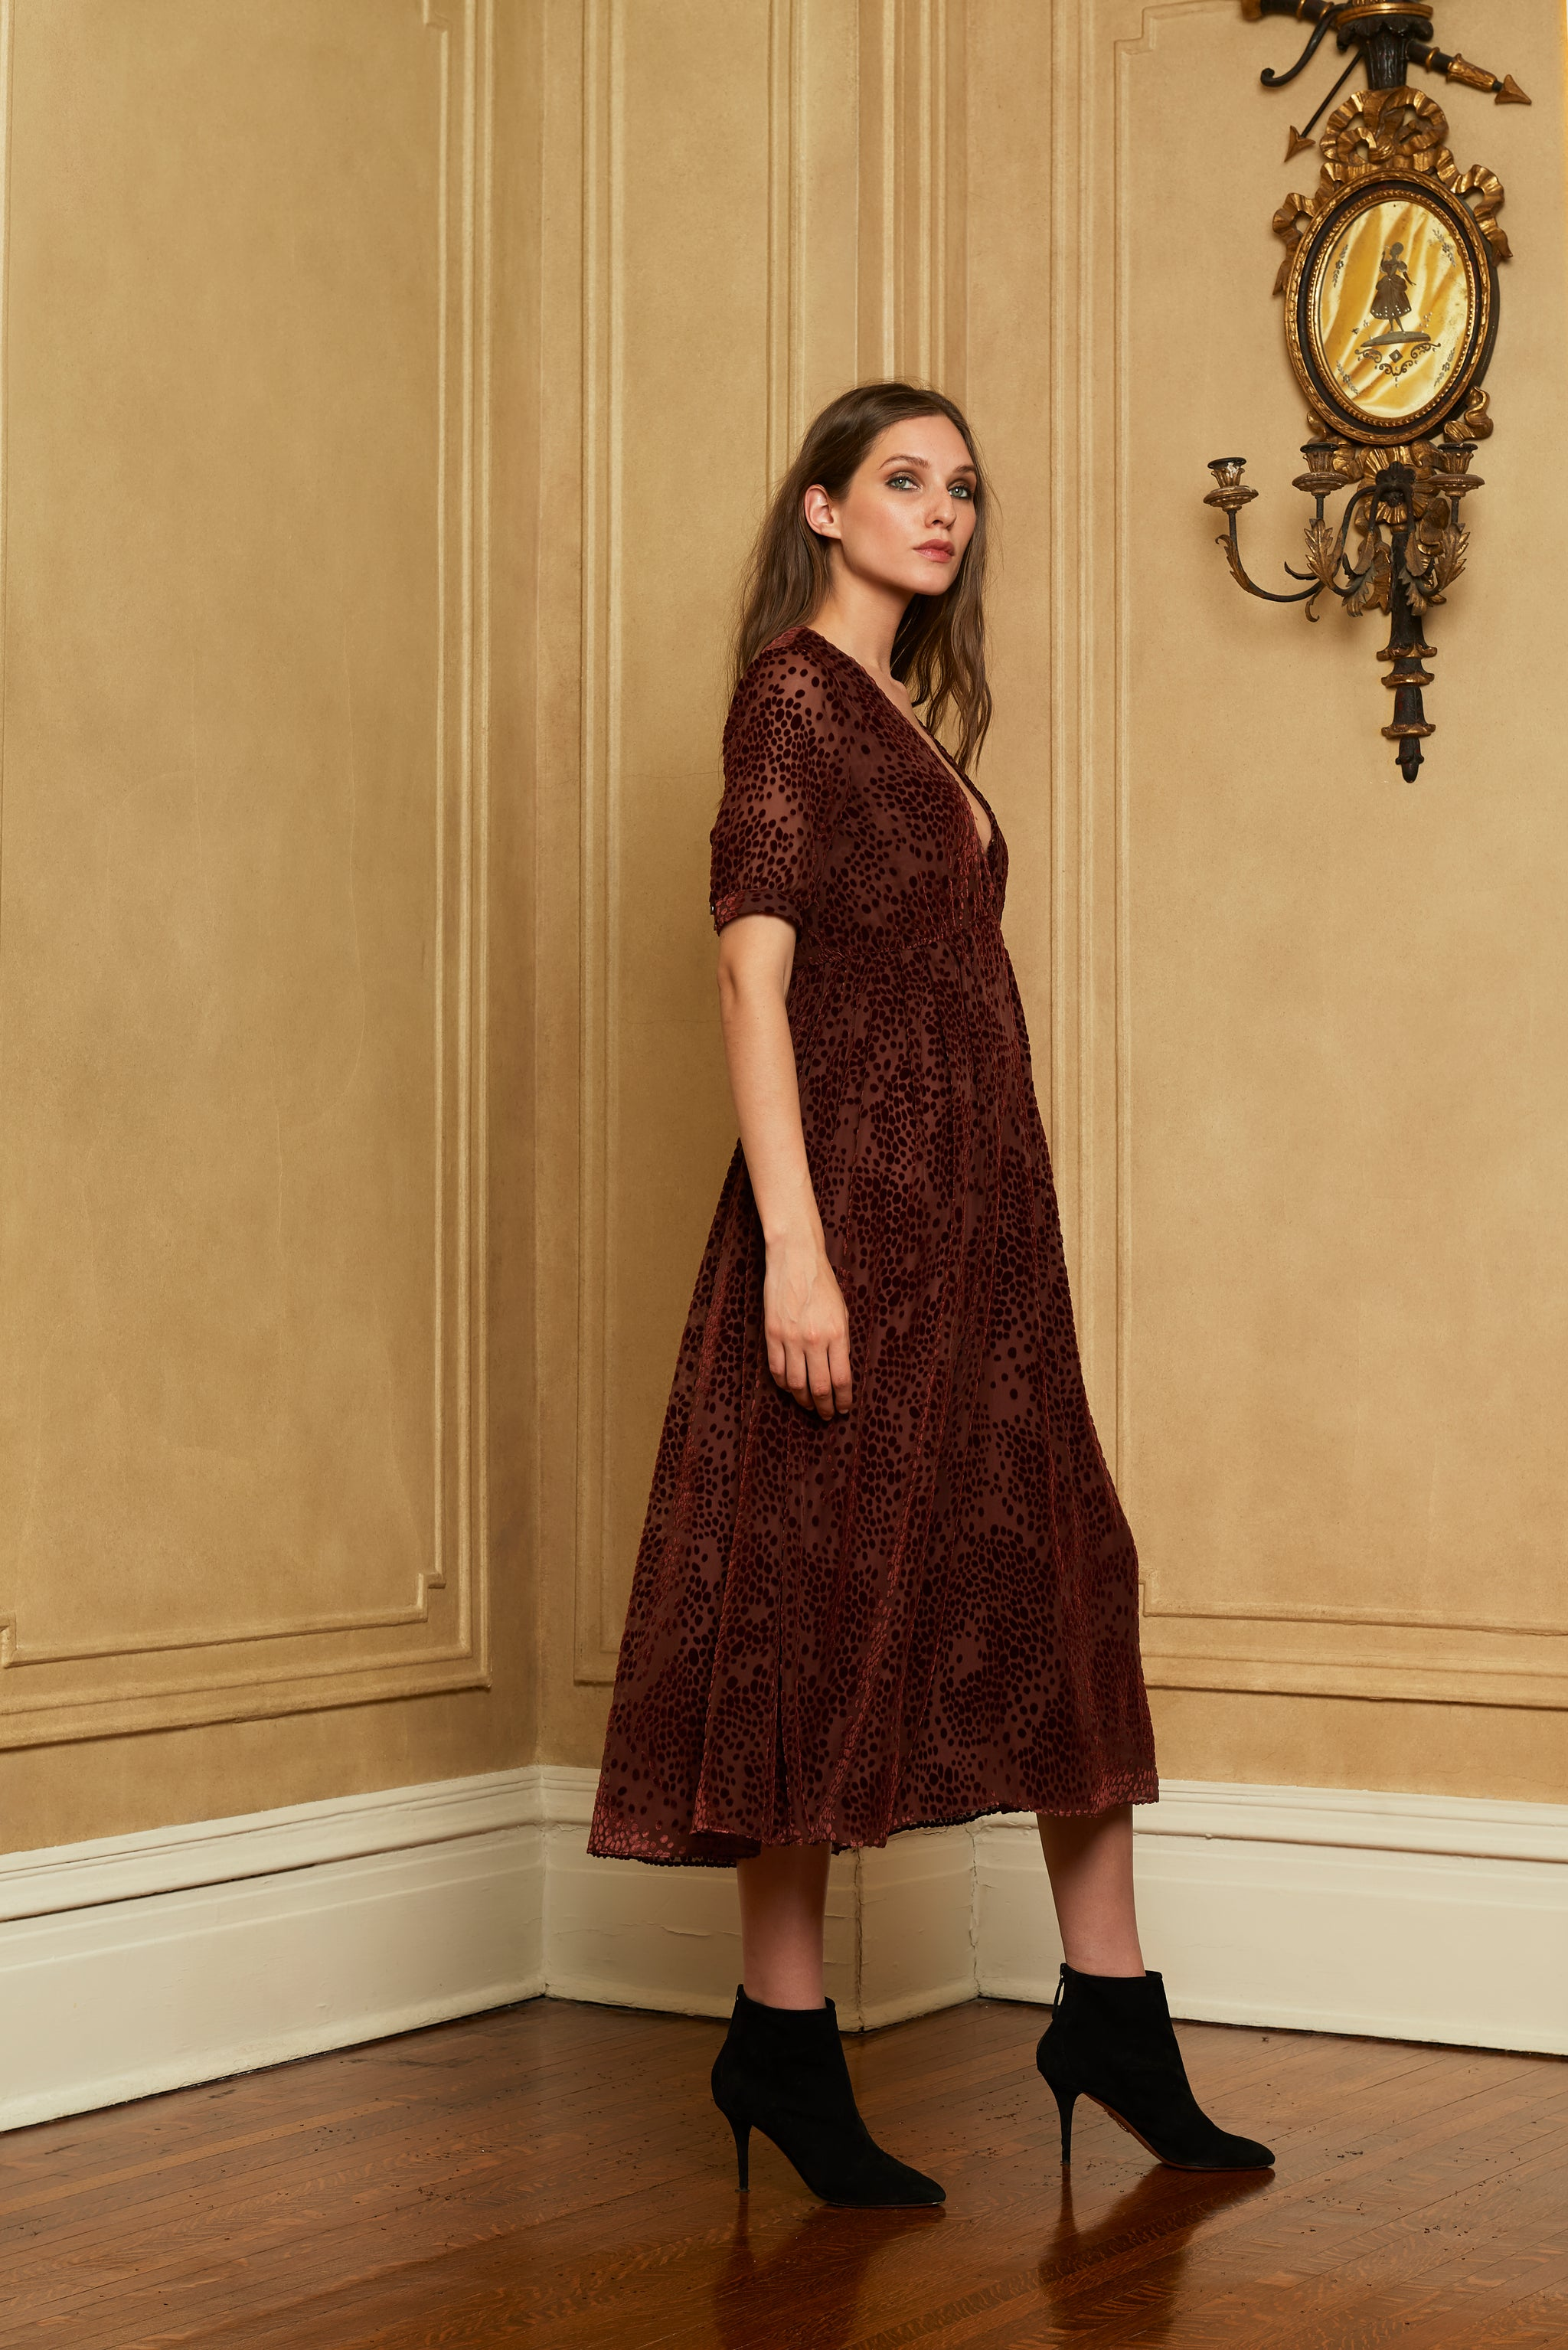 The Ivy Dress | Rust Velvet Burnout